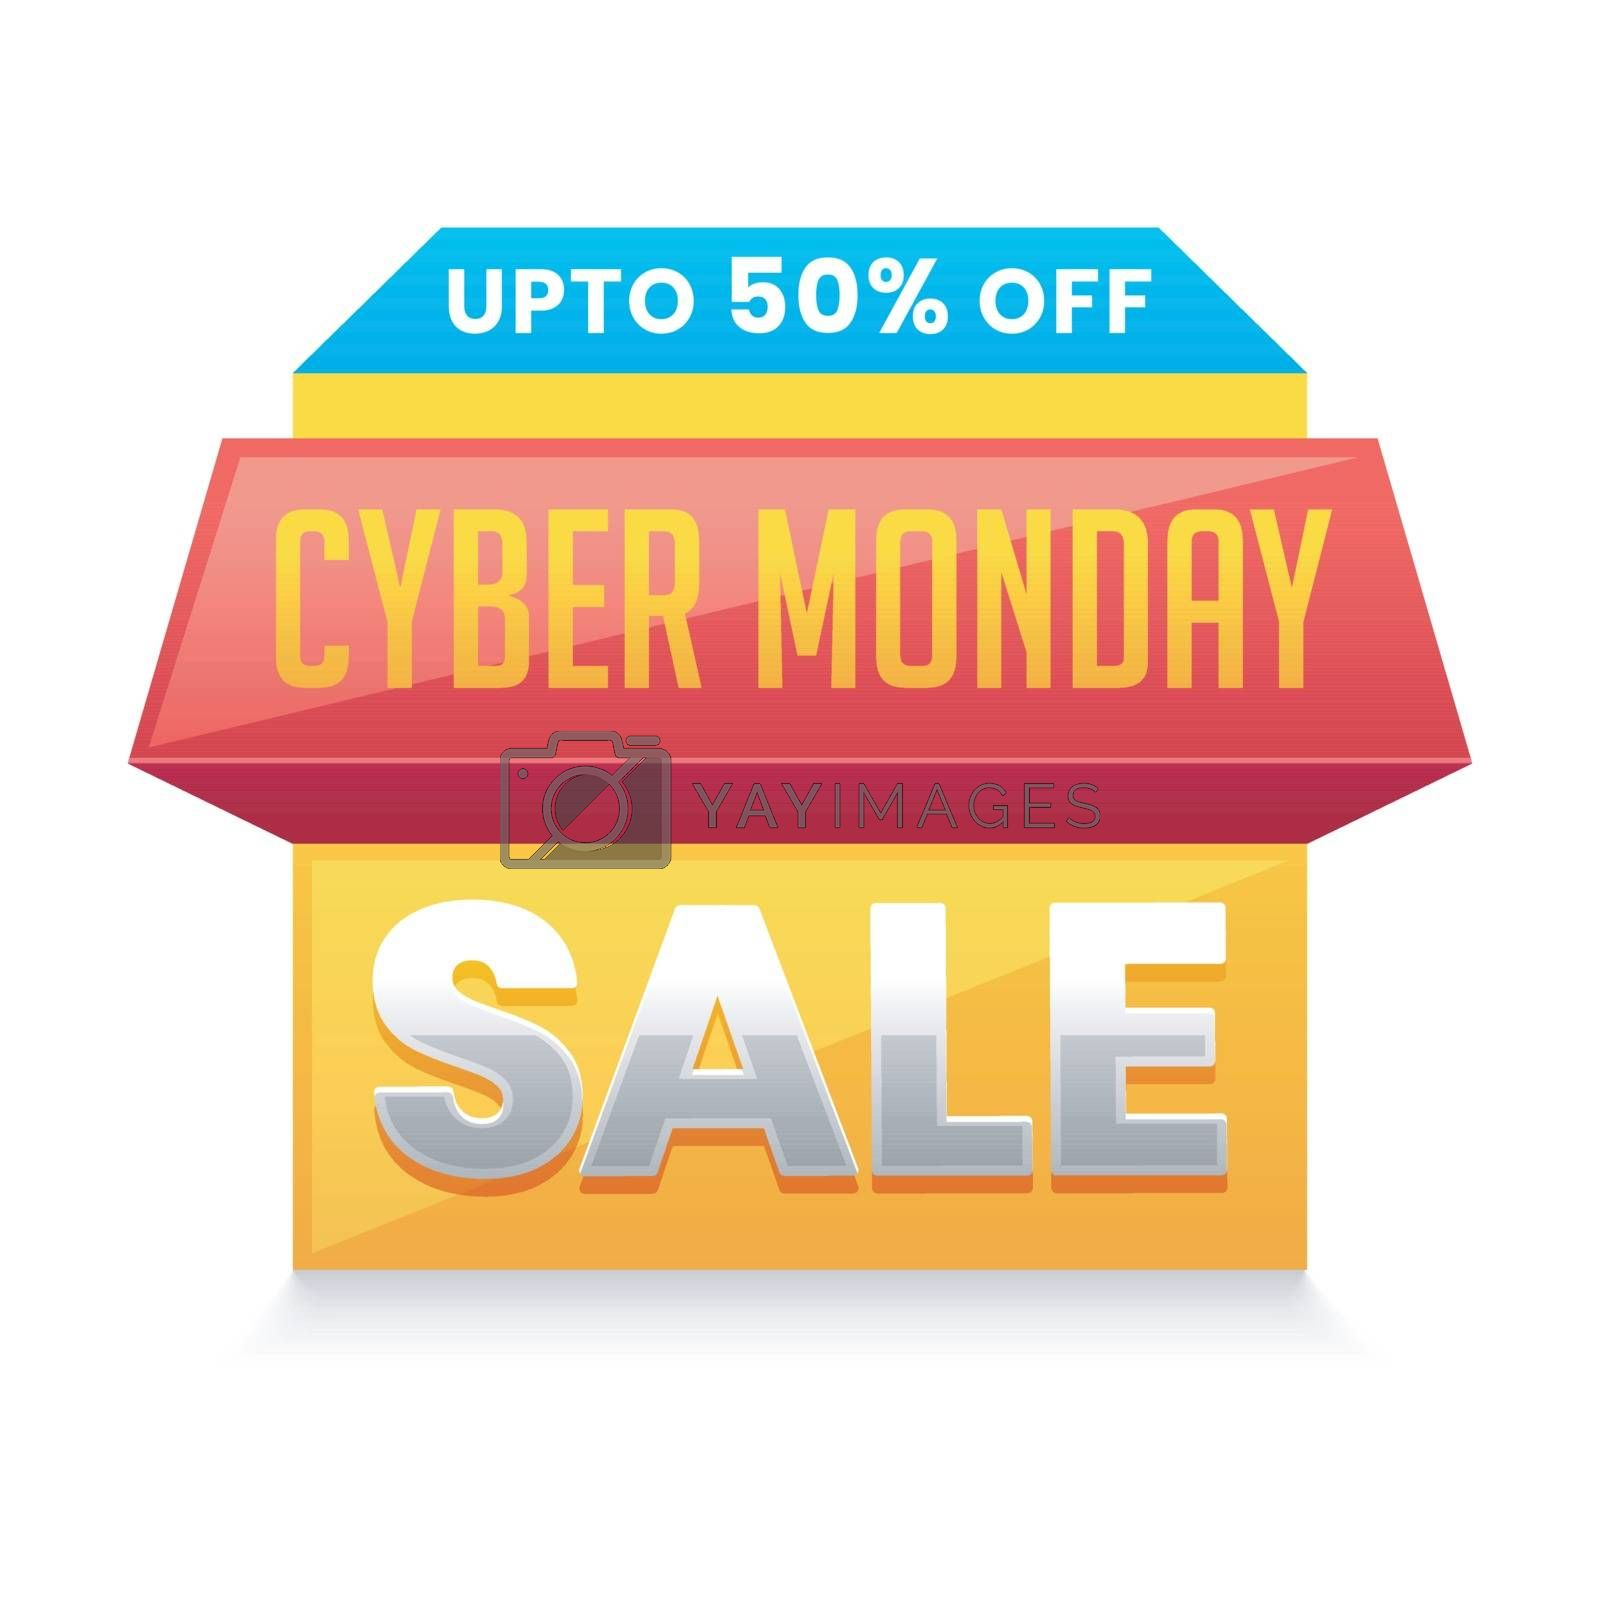 Cyber Monday Sale tag or label design with 50% discount offer on by aispl